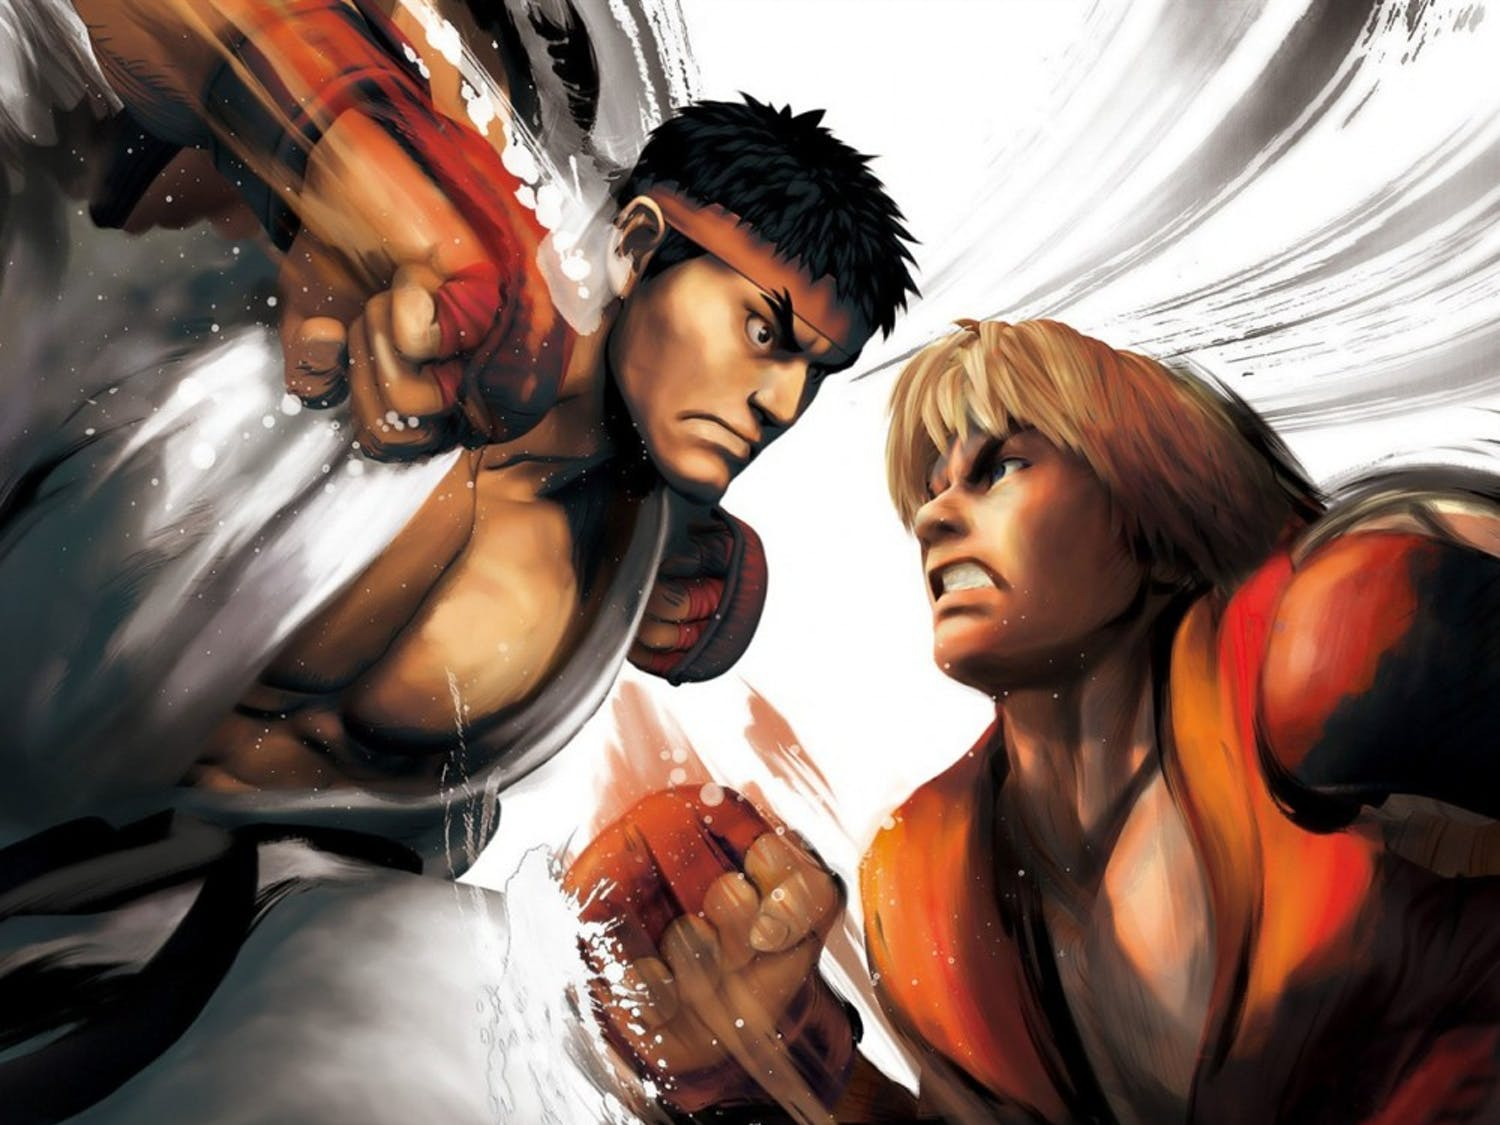 """Street Fighter"" is one of the many fighting game franchises to make their way into mainstream culture."